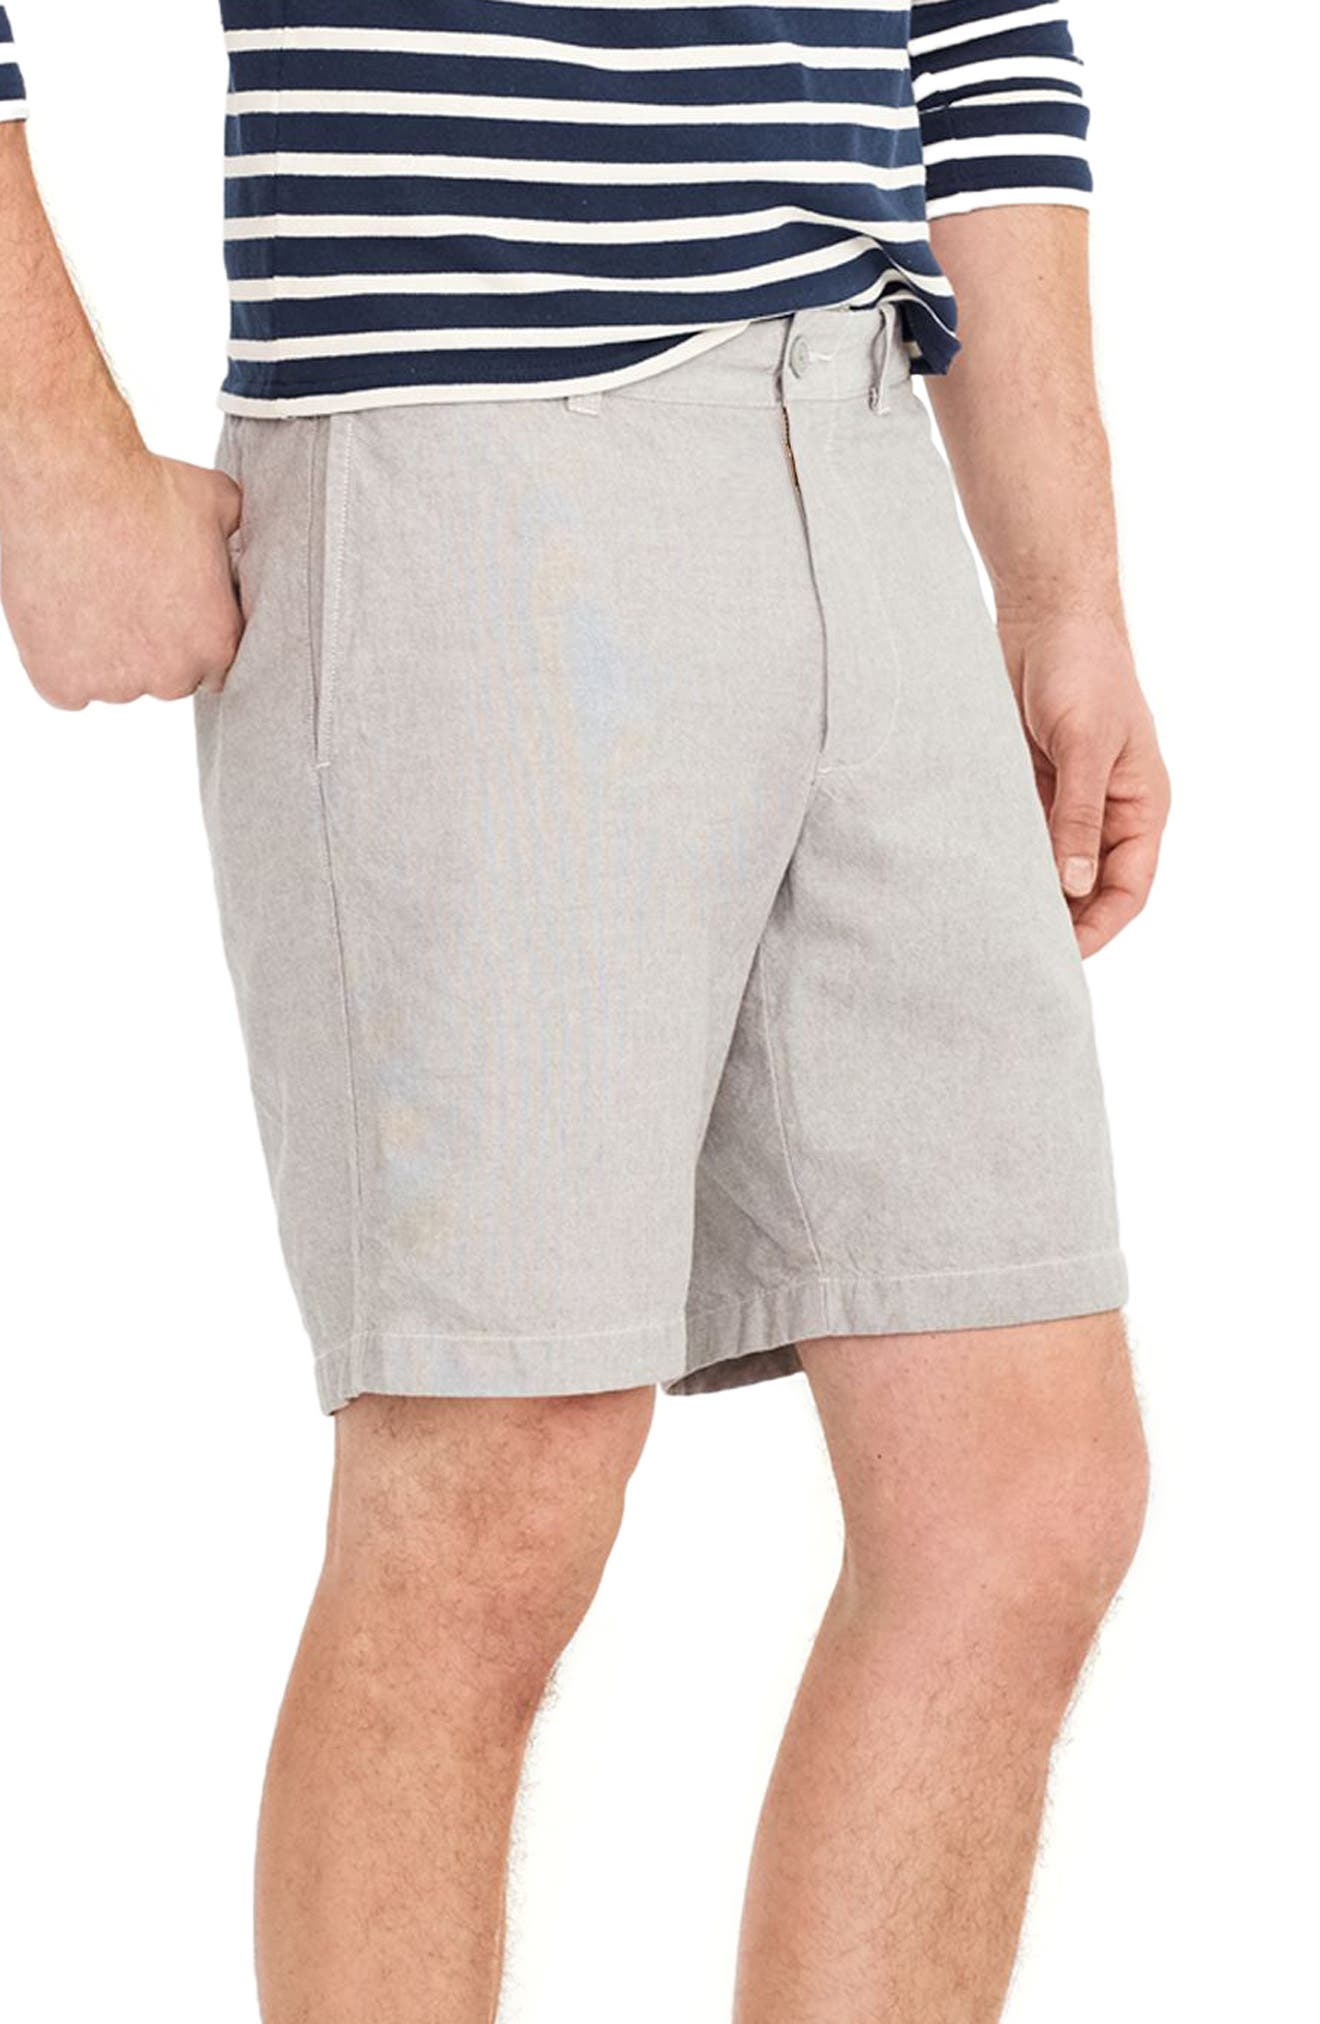 Stretch Chambray Shorts,                             Alternate thumbnail 3, color,                             020